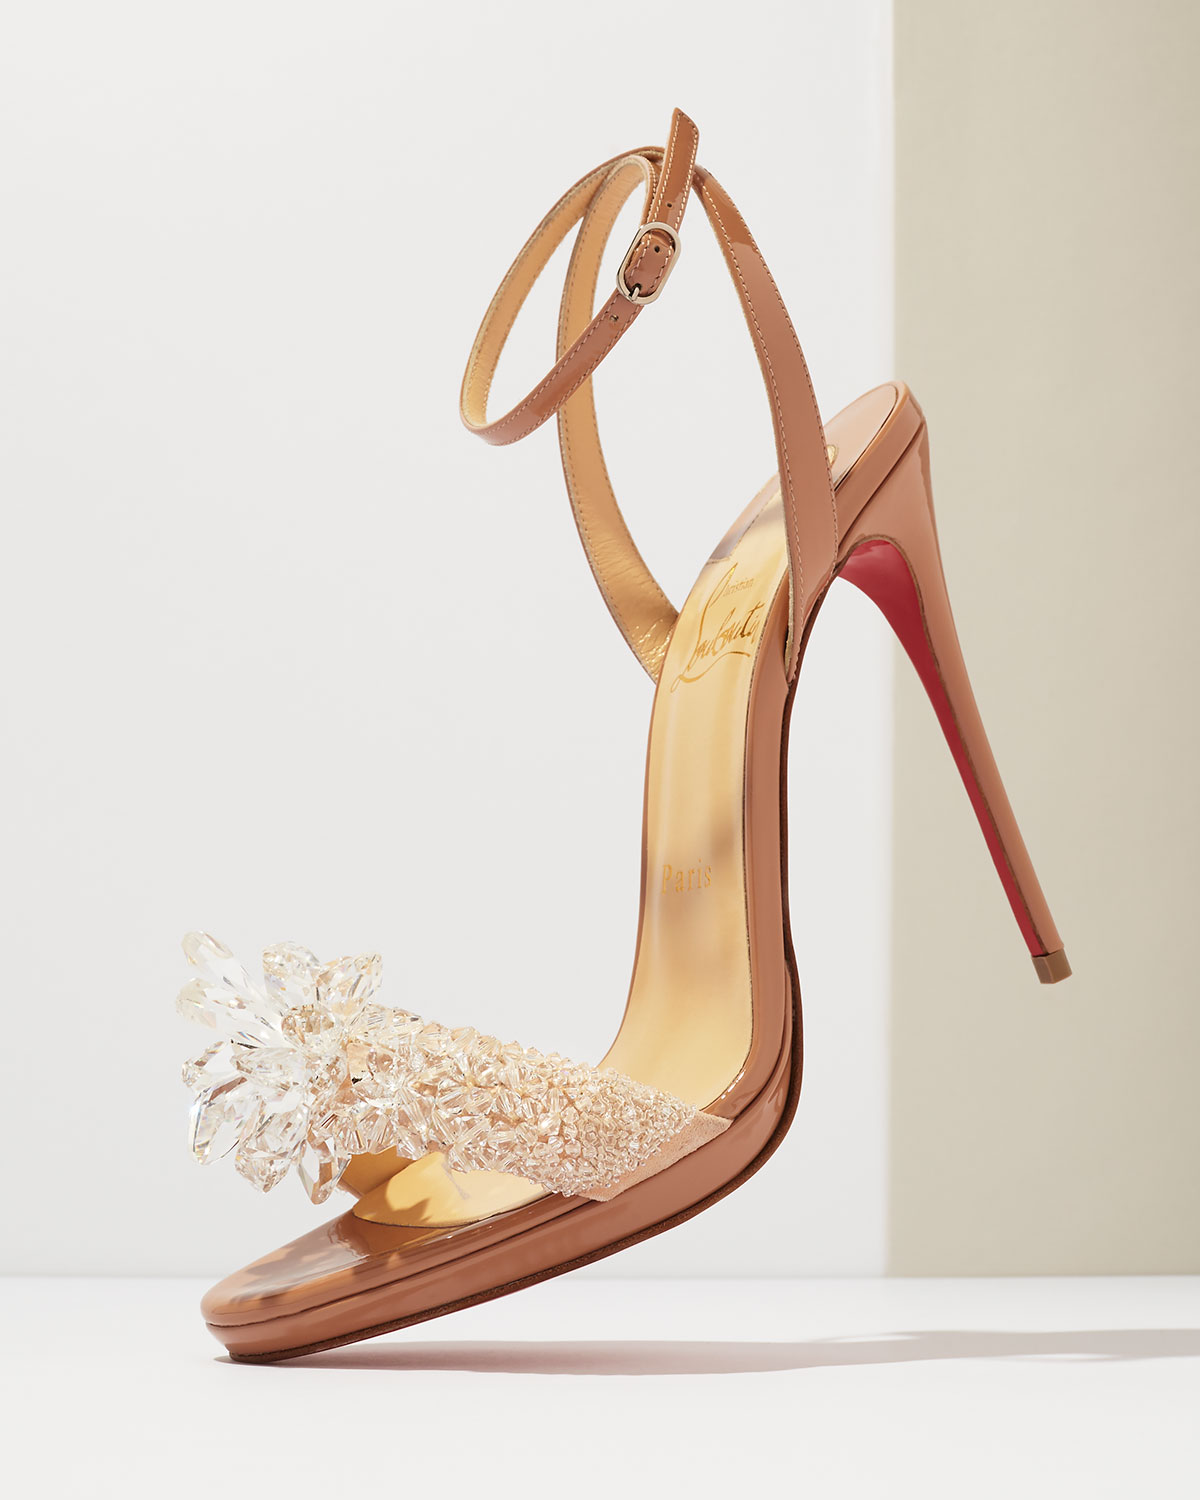 Christian Louboutin Crystal-Embellished Slingback Sandals sale choice websites sale online clearance limited edition JoNfun